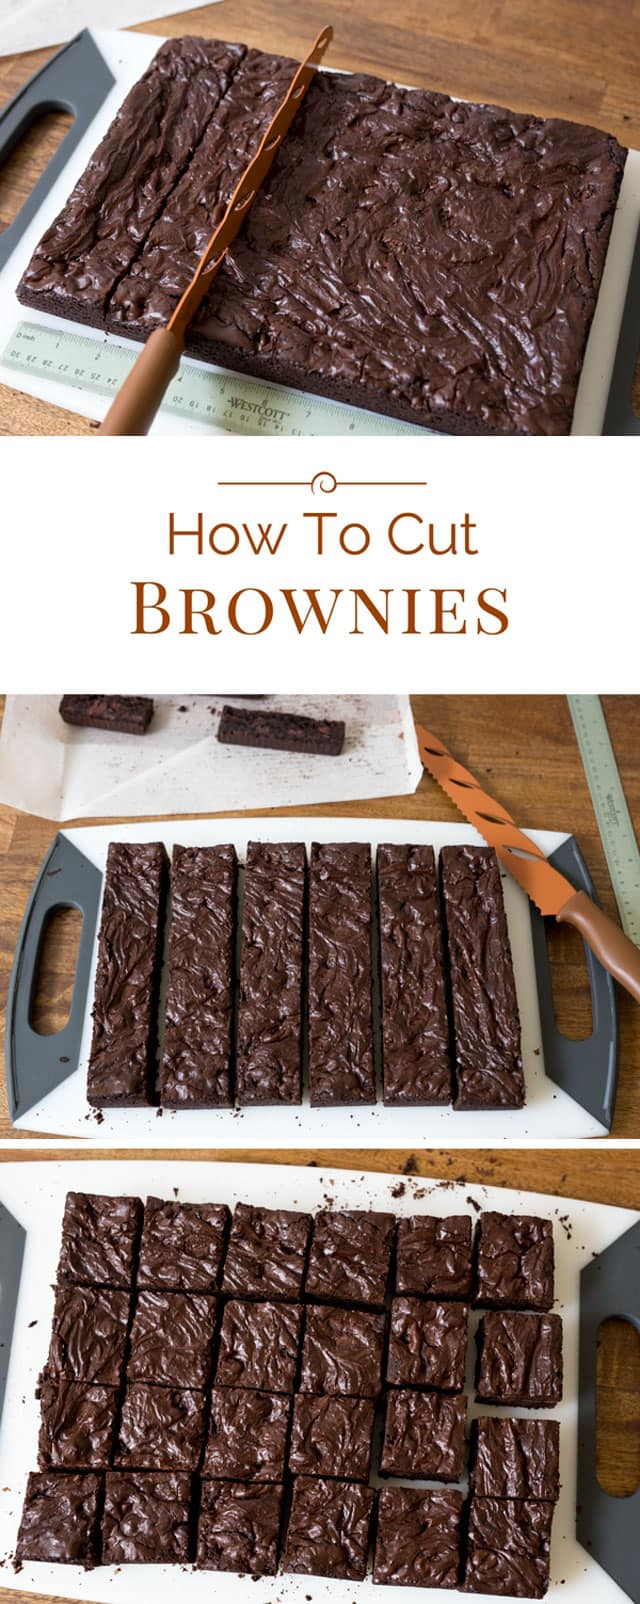 How-To-Cut-Brownies-Collage2-Barbara-Bakes